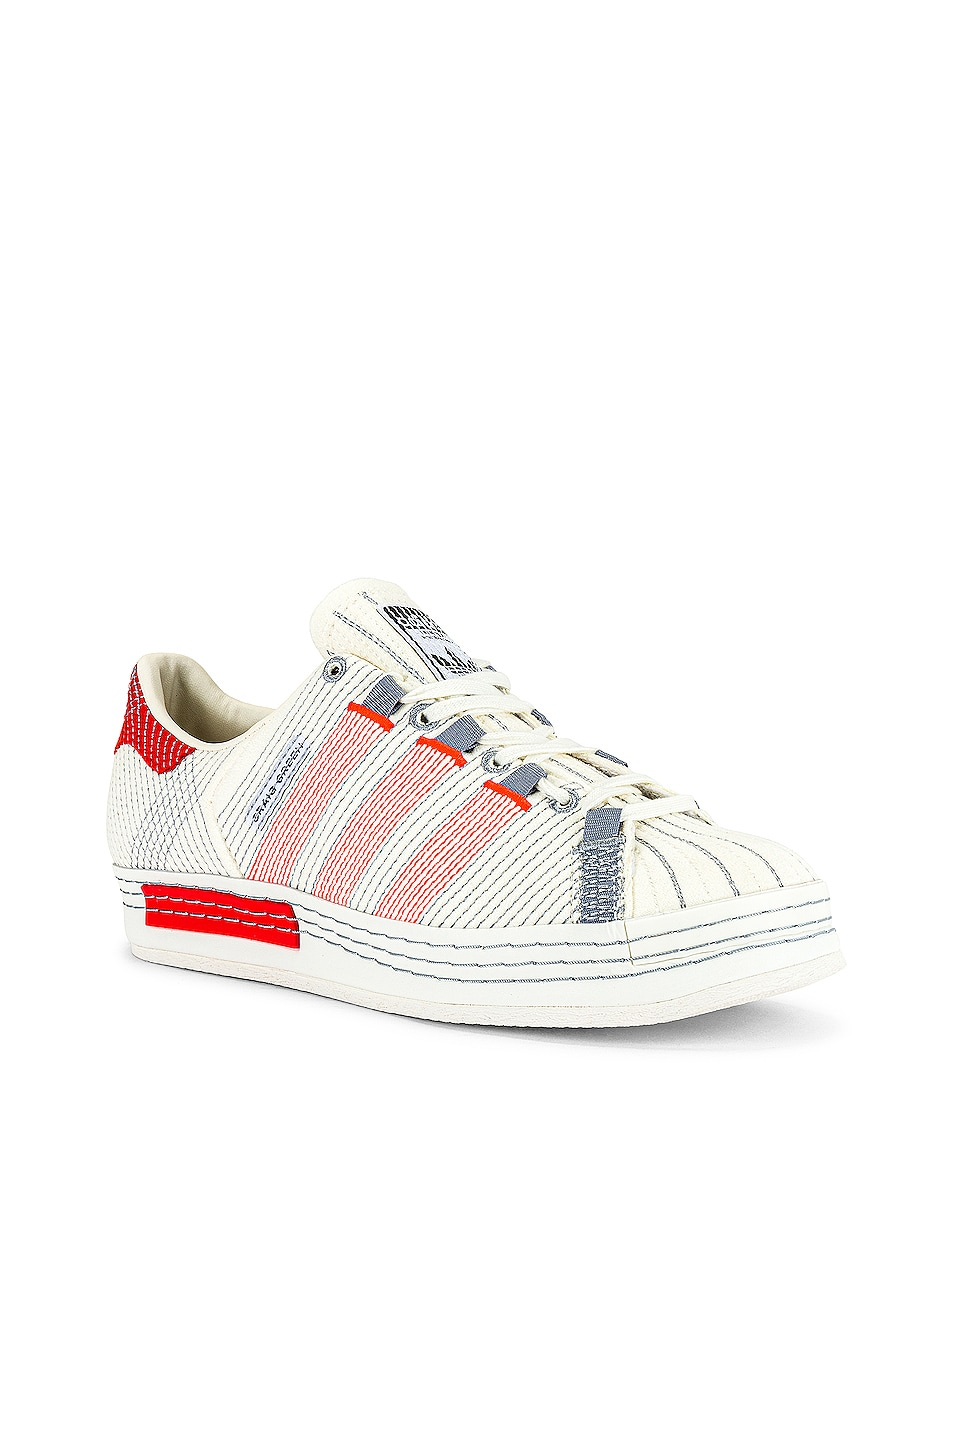 Image 1 of adidas by Craig Green Superstar Sneaker in Off White & Bright Red & Grey Three F17